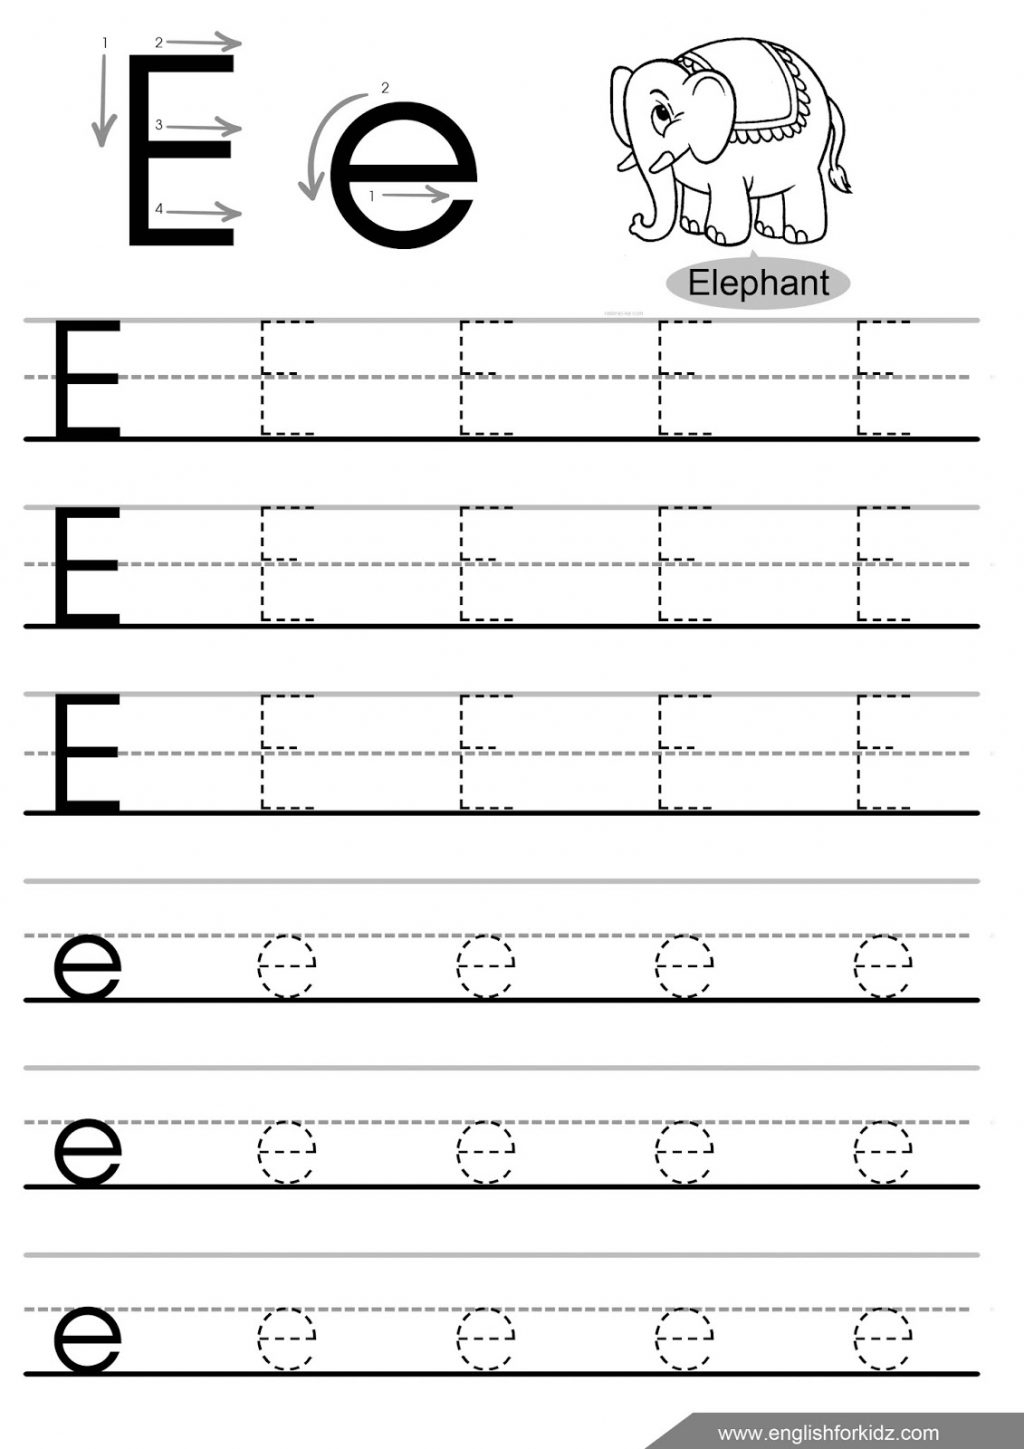 Alphabet Tracing Worksheets For Kindergarten Kindergarten Letter E - Free Printable Preschool Worksheets Tracing Letters